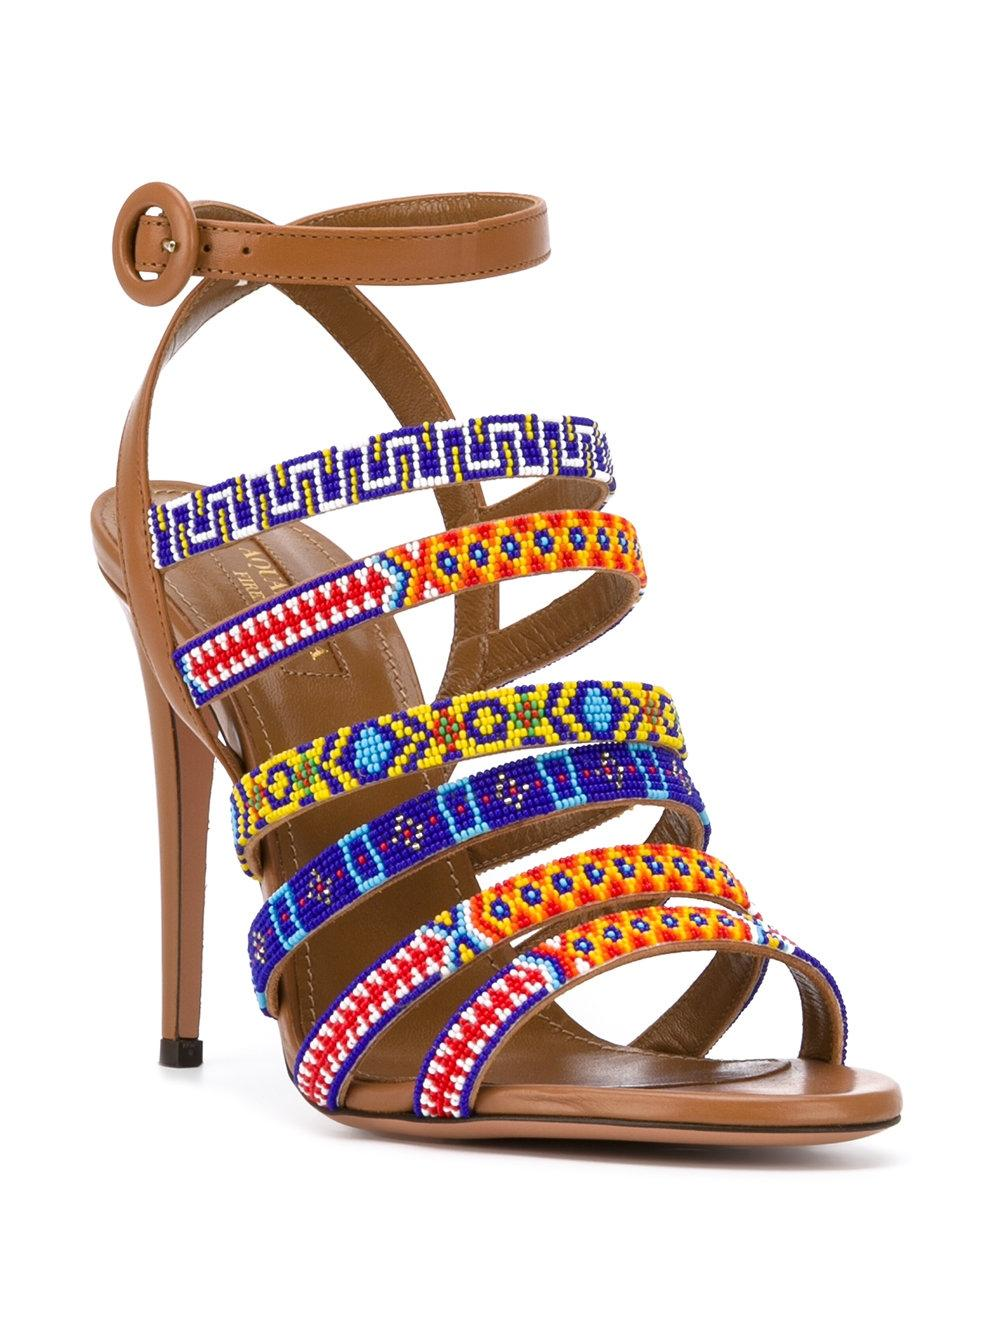 Aquazzura Brown/Whiskey with Colorful Beaded Strap Masai 105 Sandals Size EU 38 (Approx. US 8) Regular (M, B)